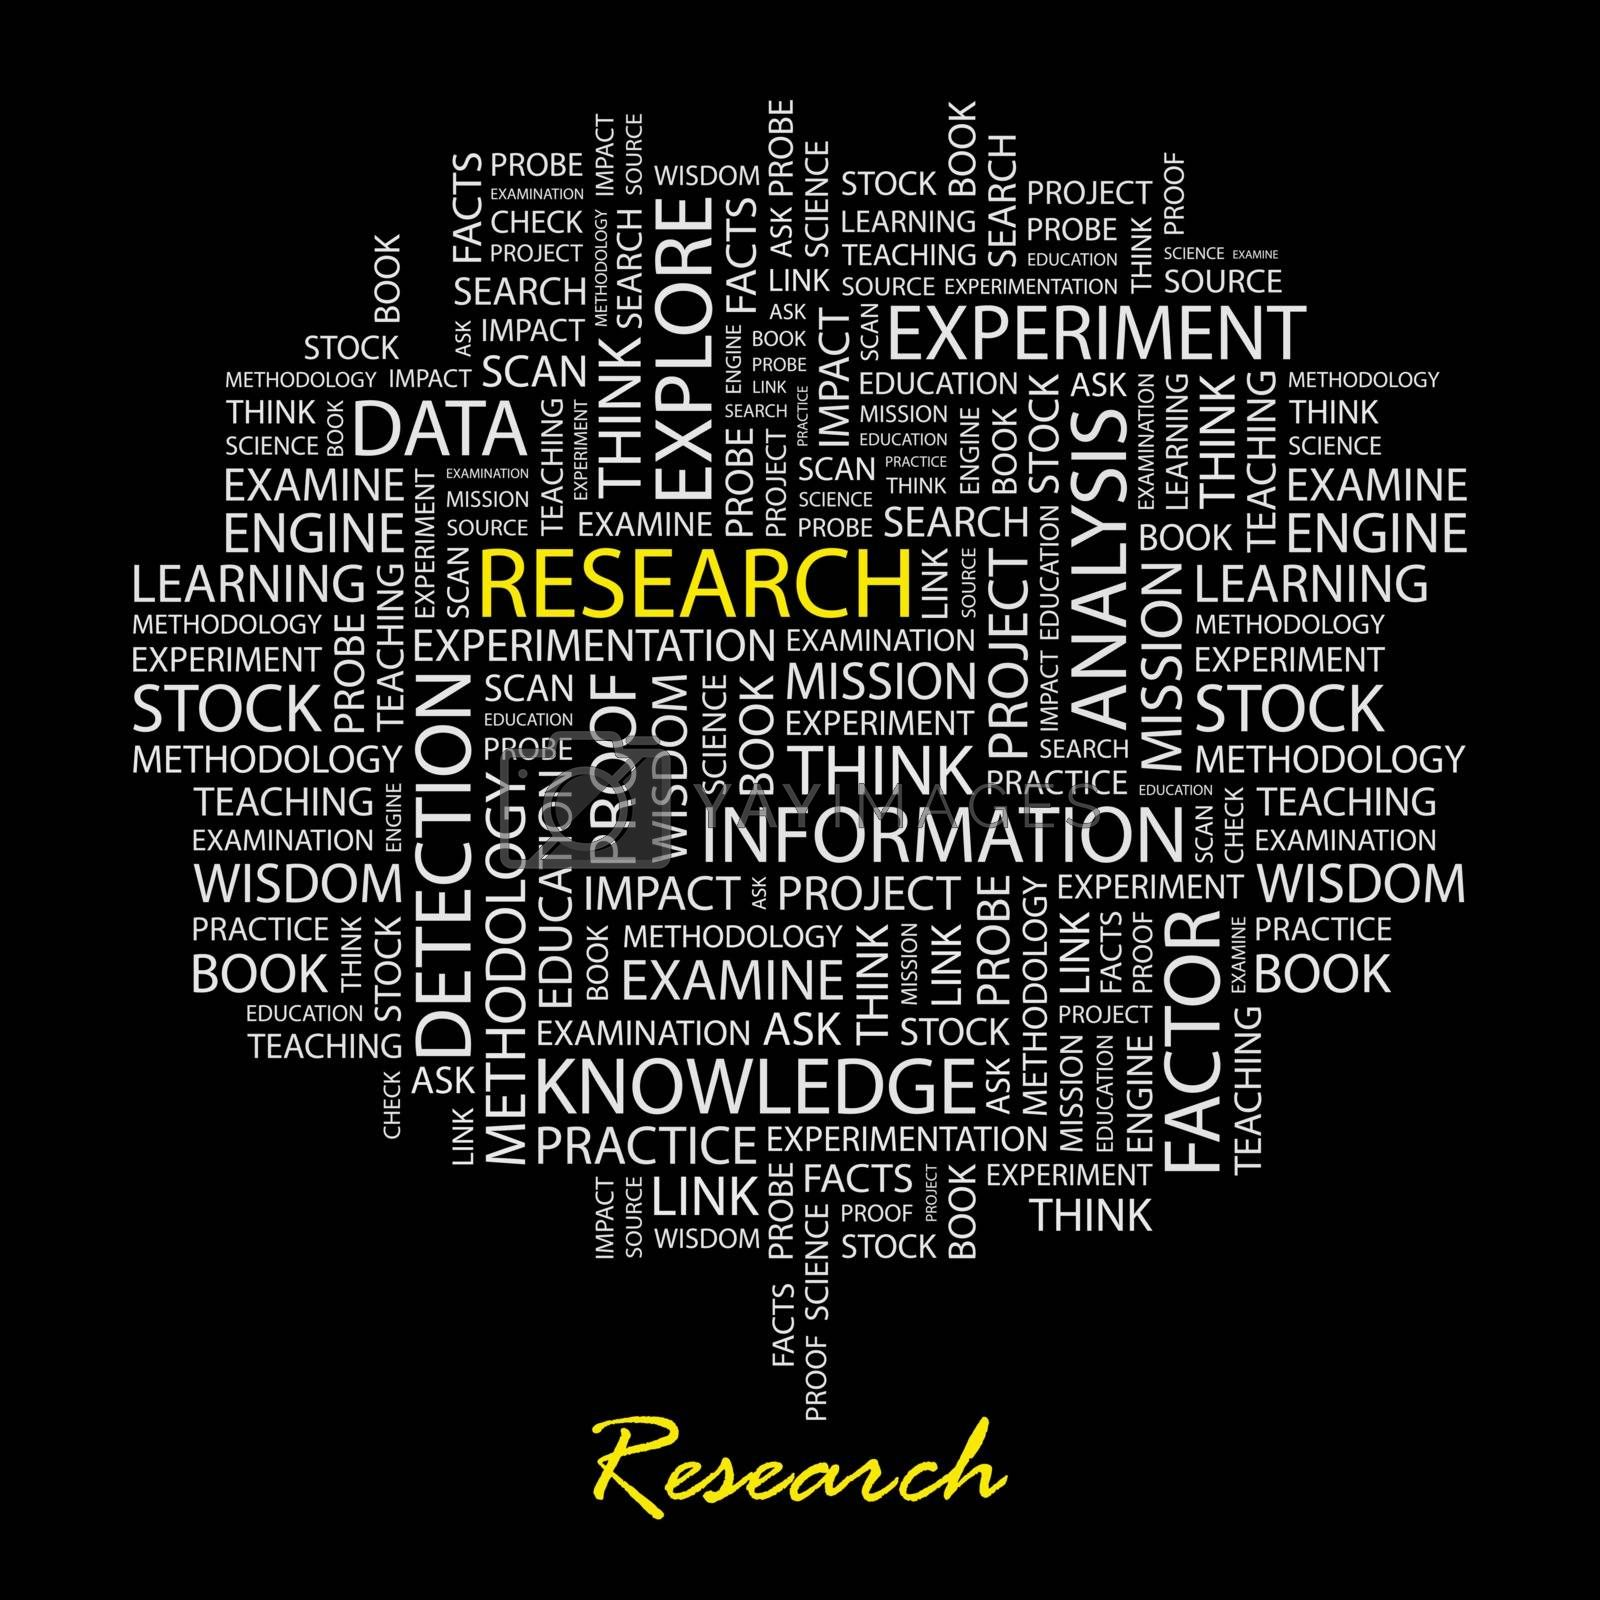 RESEARCH. Word cloud illustration. Tag cloud concept collage.